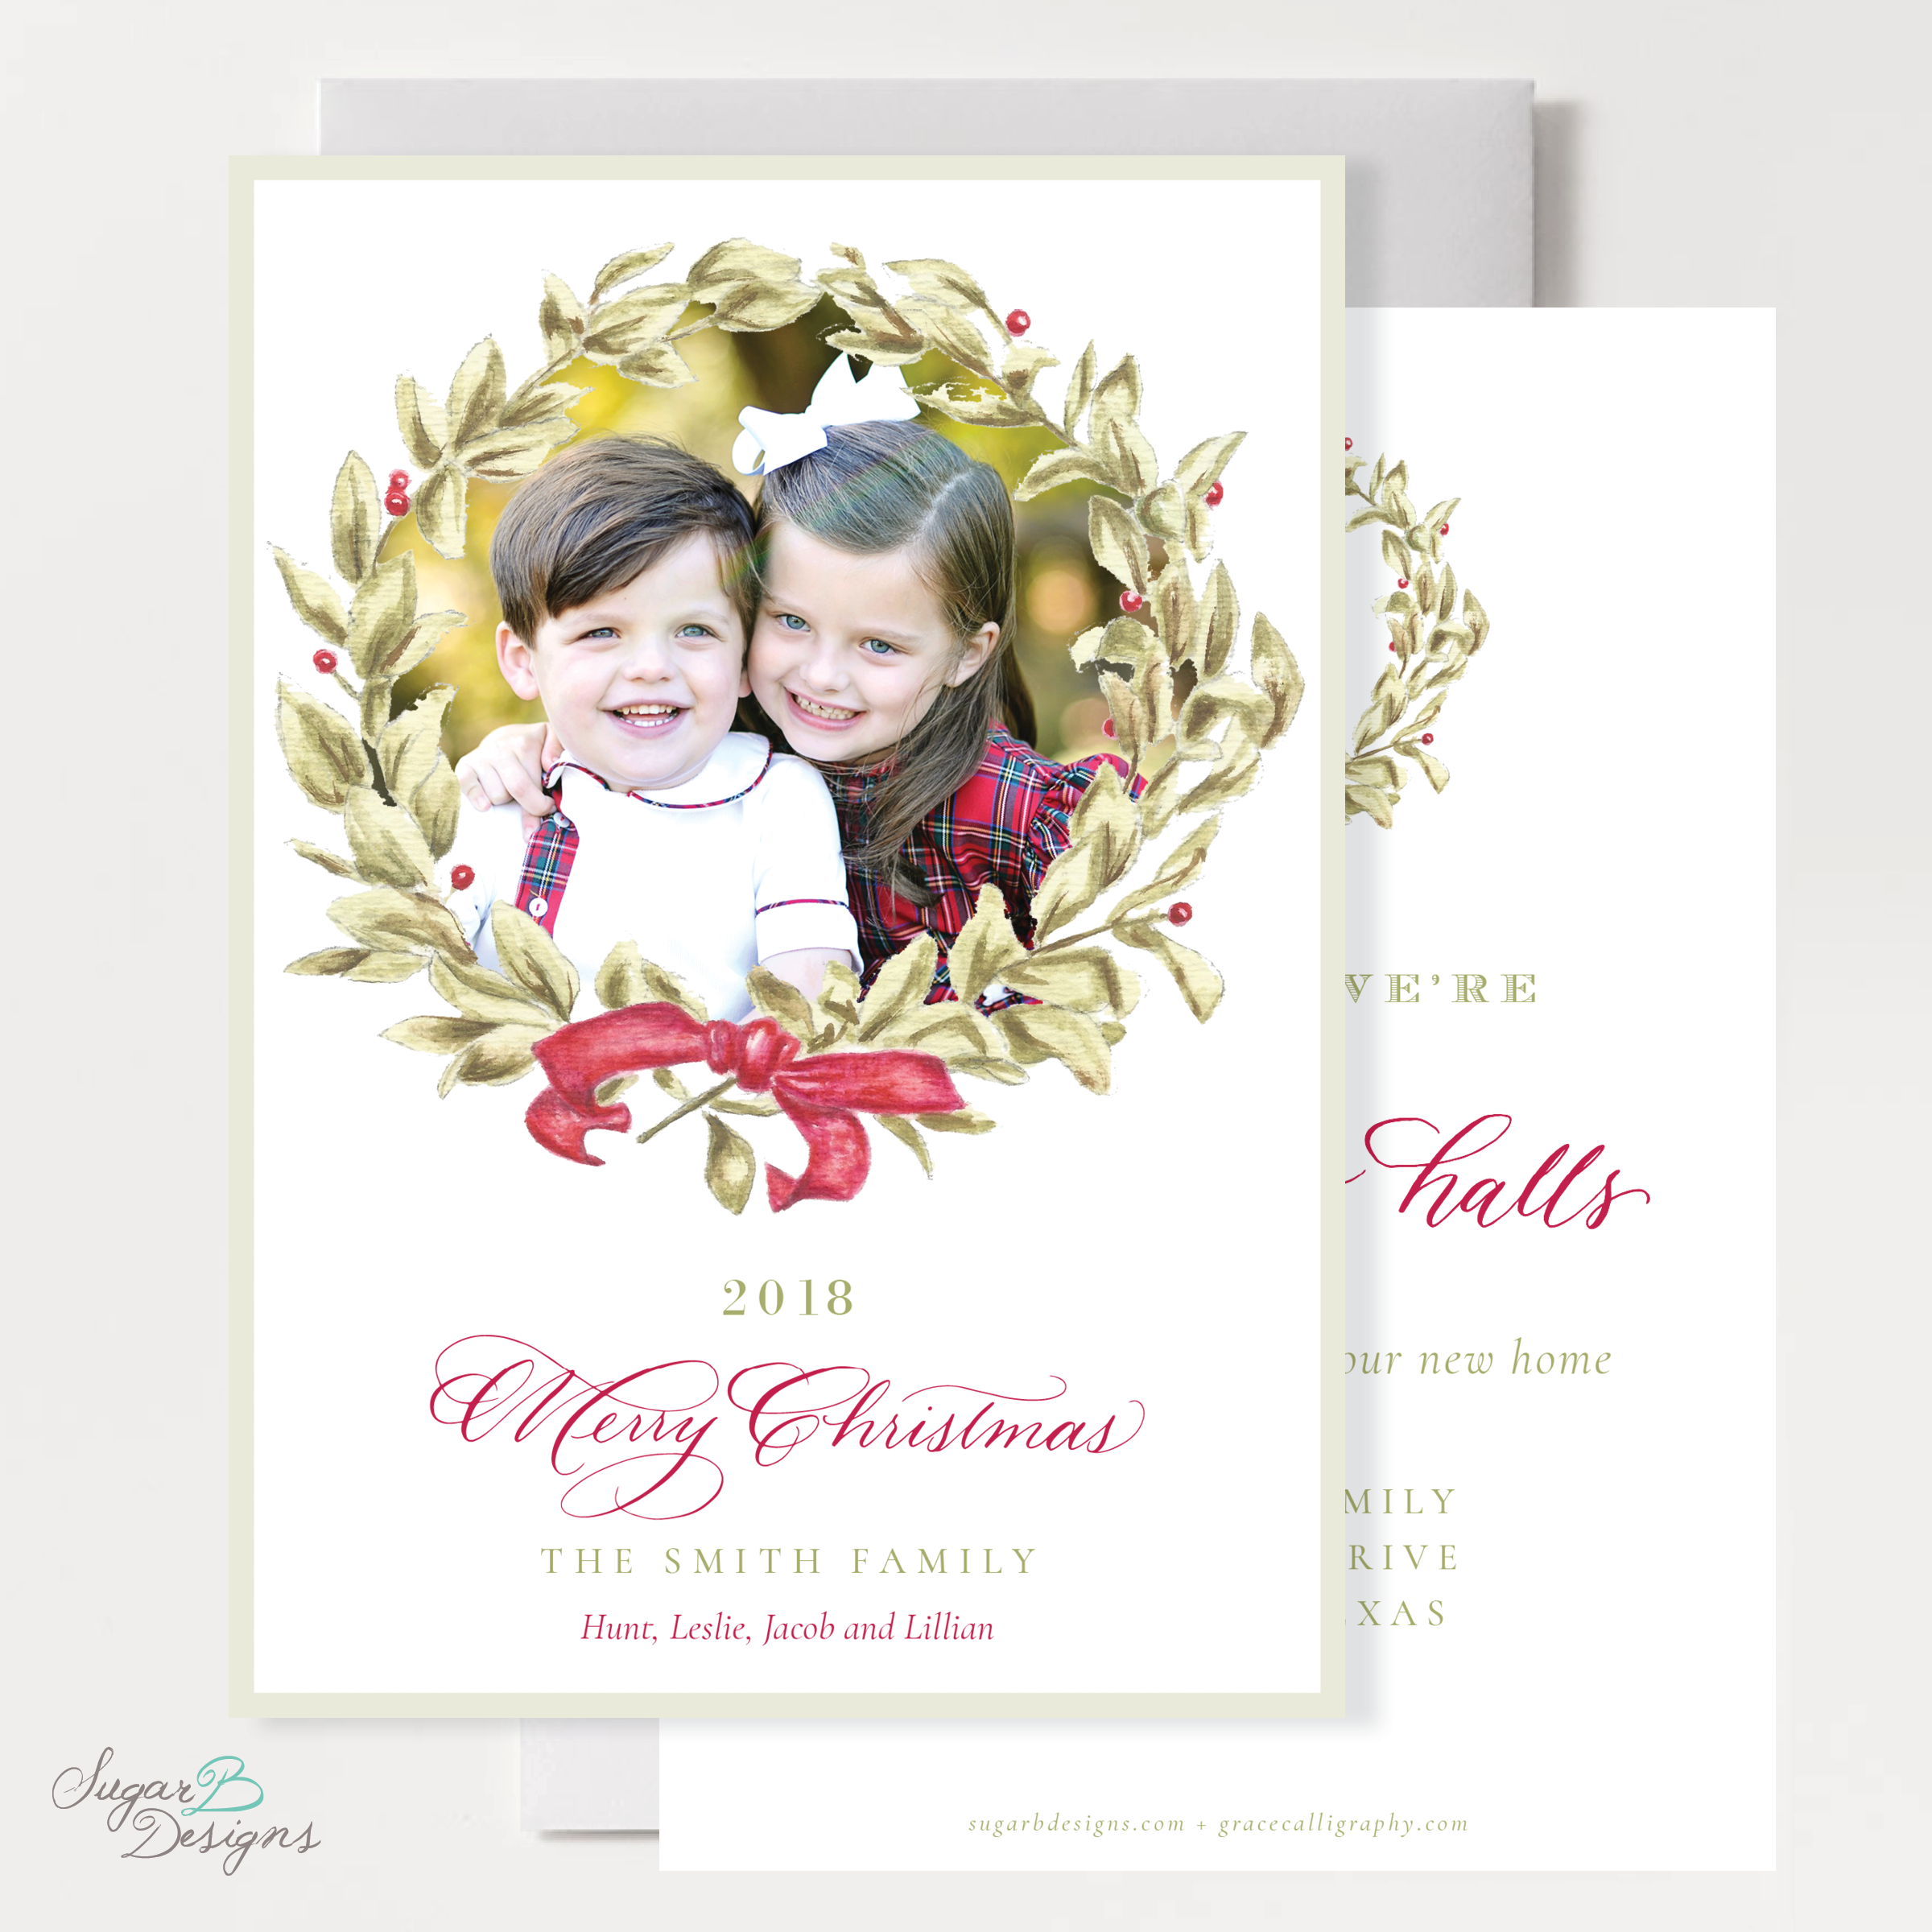 Meryl Wreath Red Moving Christmas Card front + back by Sugar B Designs.png